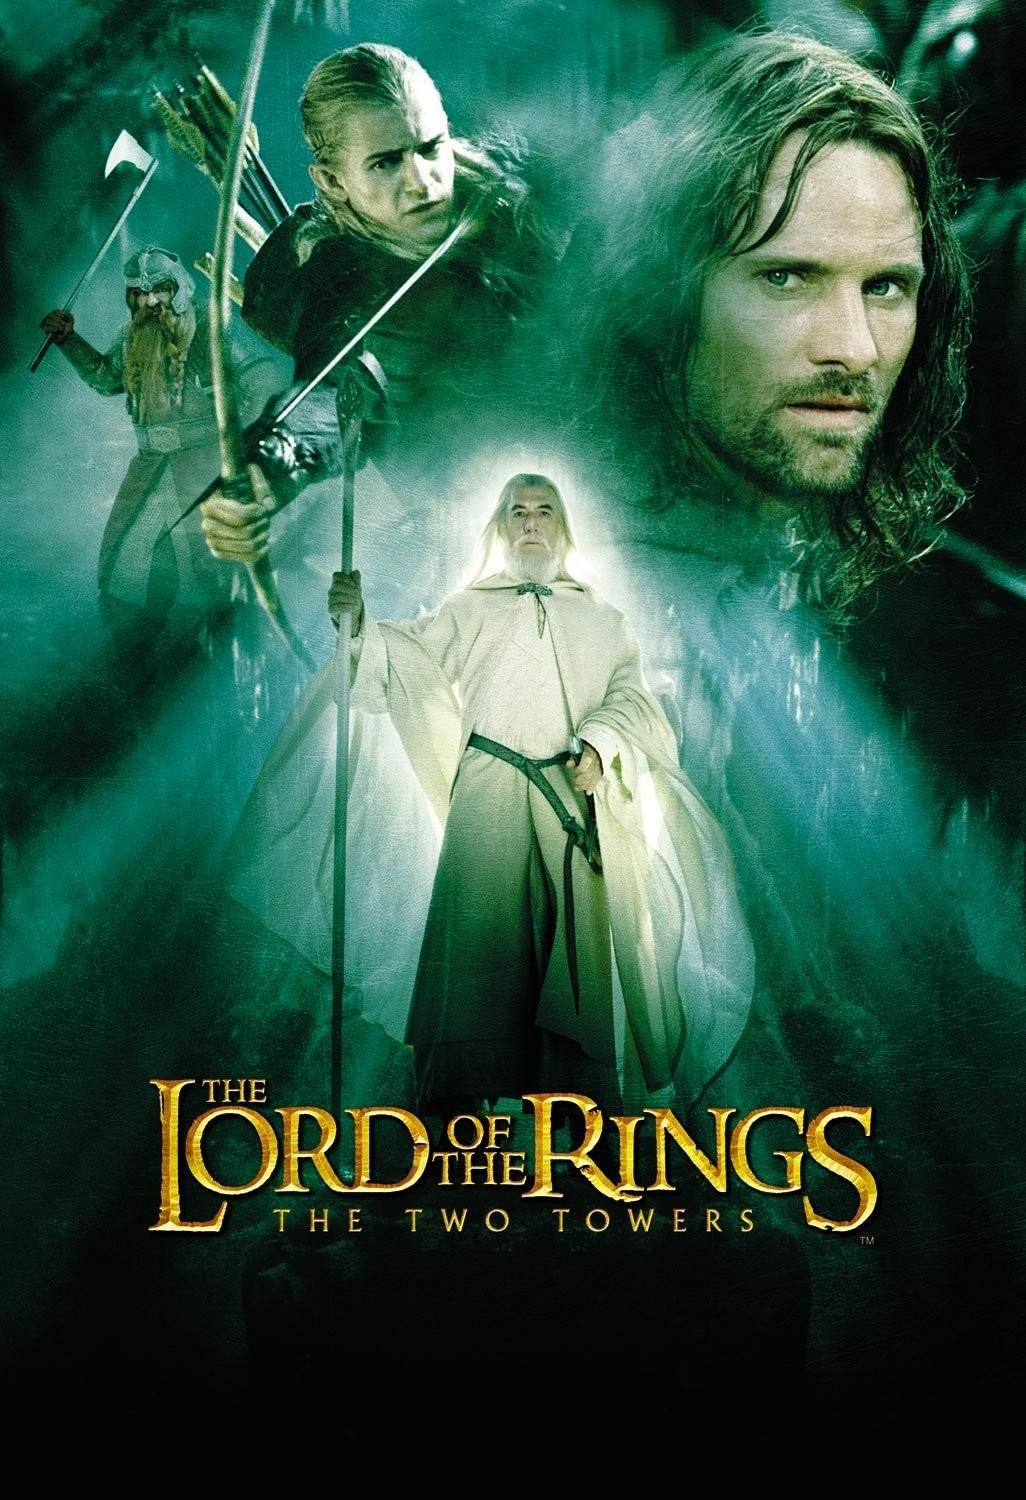 the_lord_of_the_rings_the_two_towers_2002.jpg (immagine JPEG, 1026×1500 pixel)